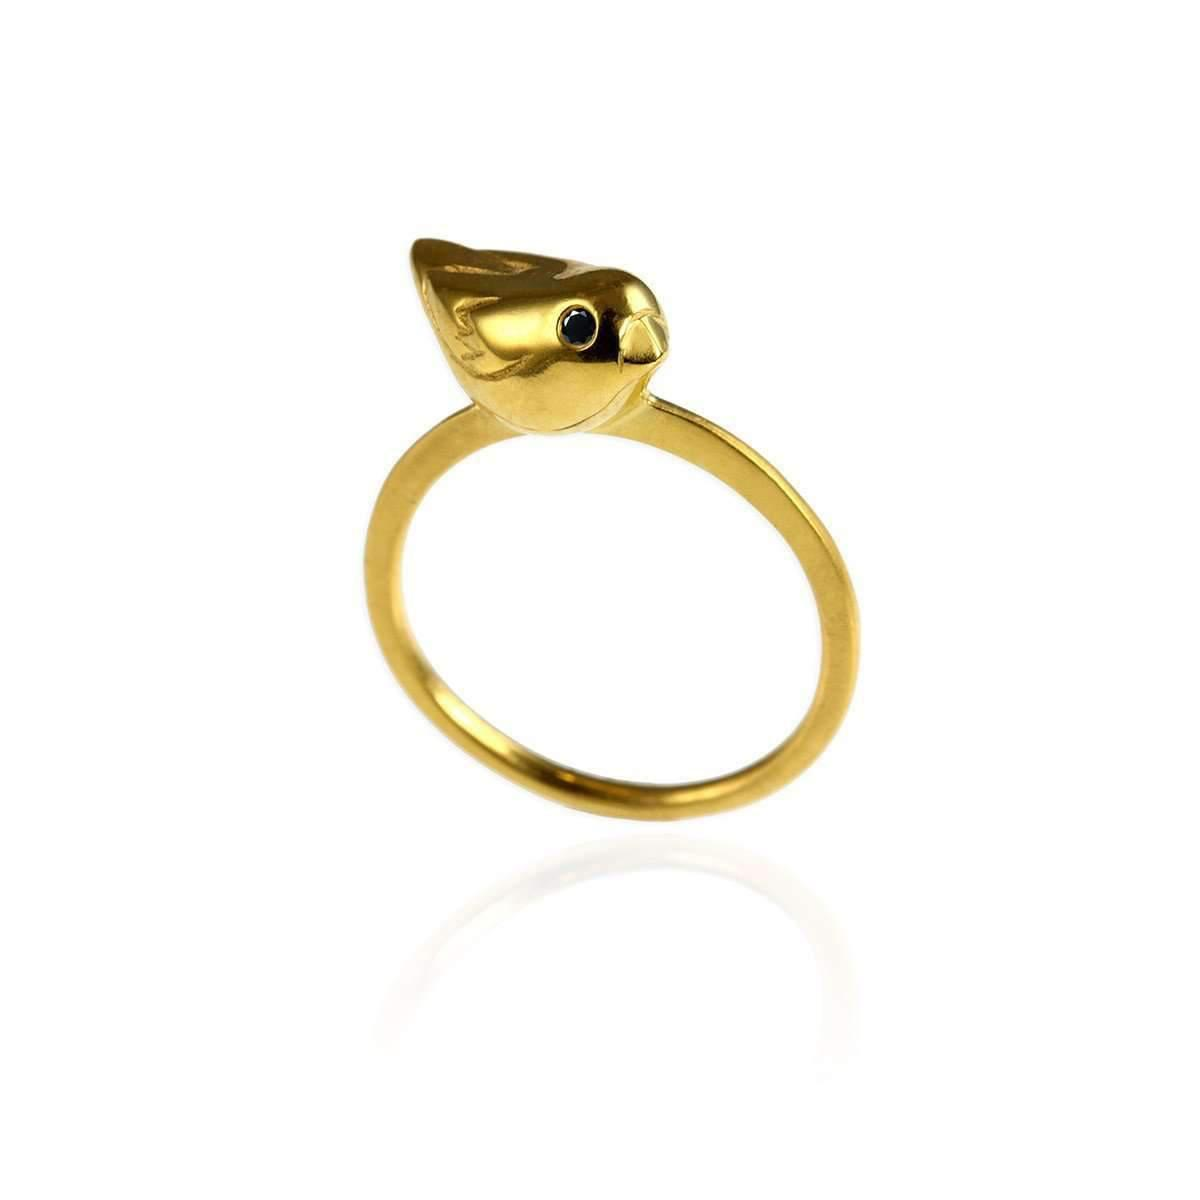 Jana Reinhardt Gold Plated Silver Wing Ring - UK I 1/2 - US 4 1/2 - EU 48 1/2 lO1FwXe4n